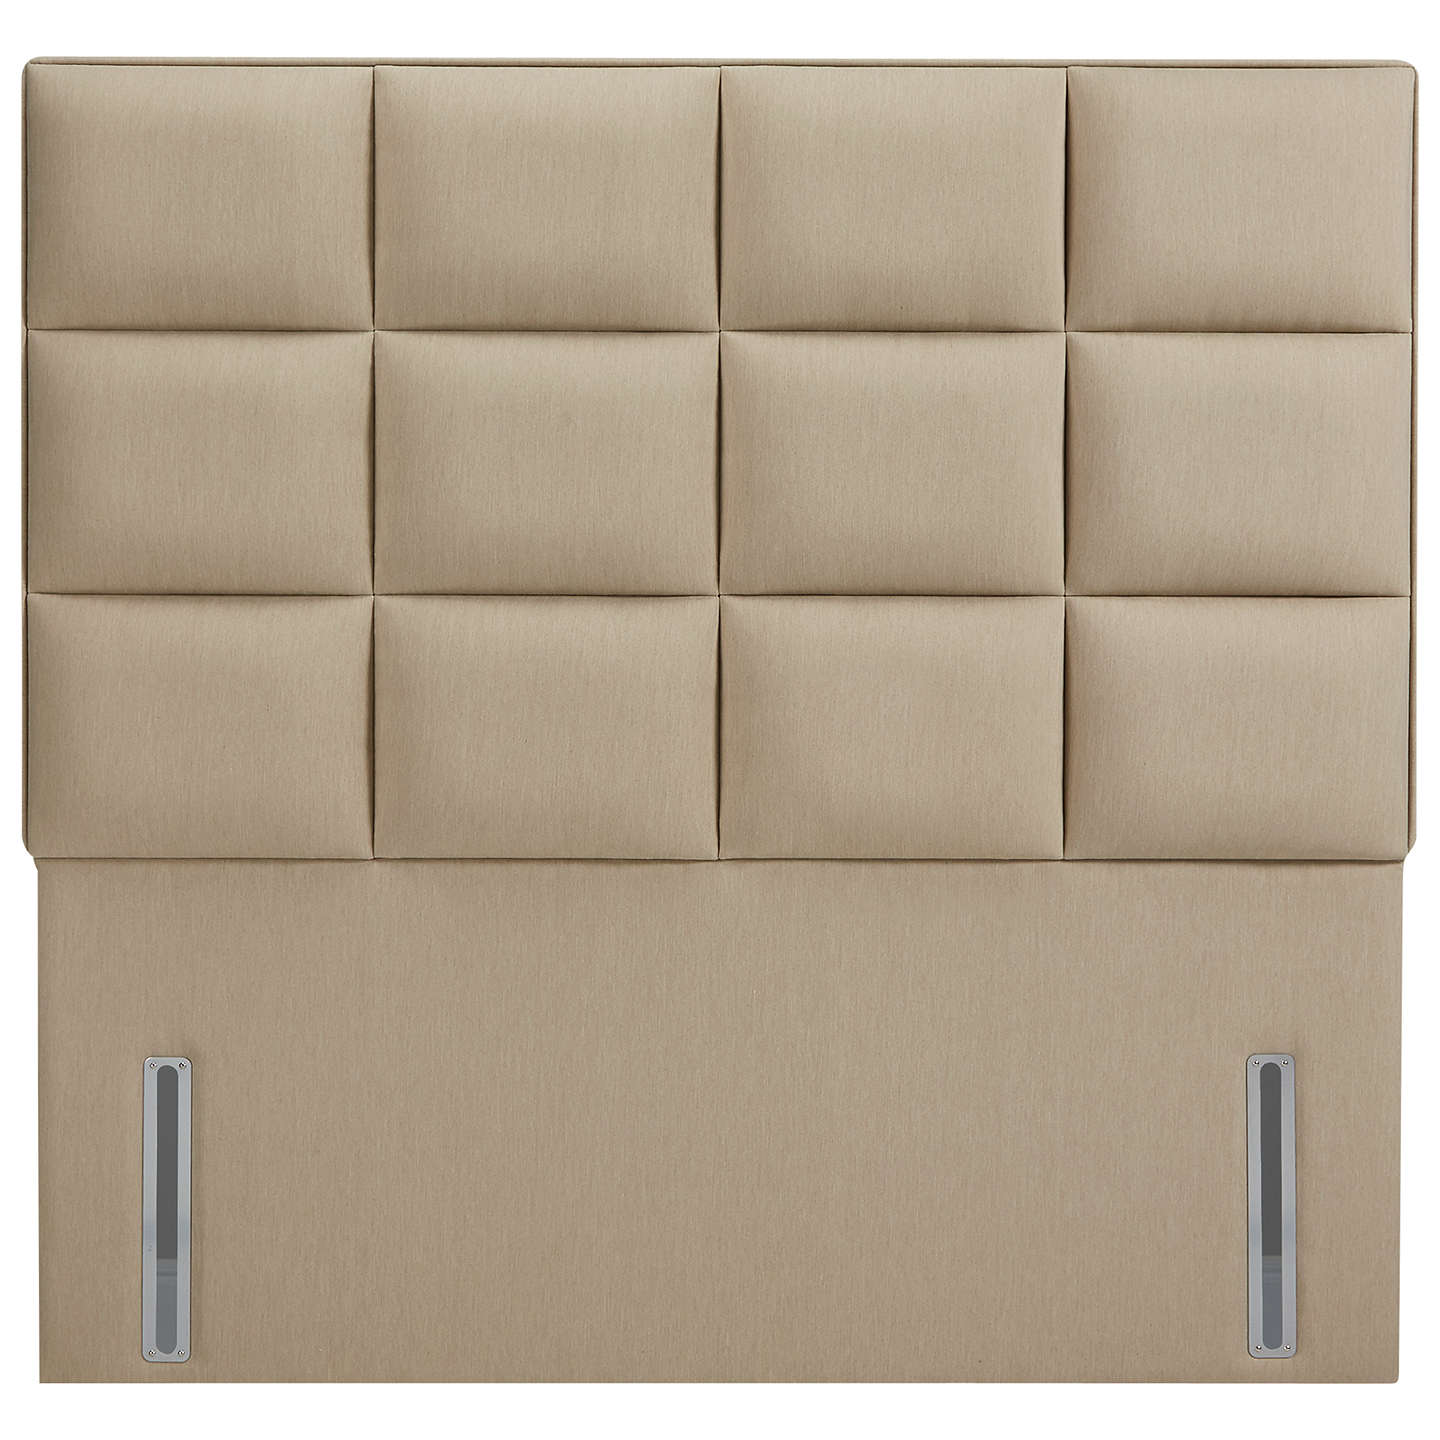 John Lewis The Ultimate Collection Gloucester Headboard, Pebble Canvas, King Size